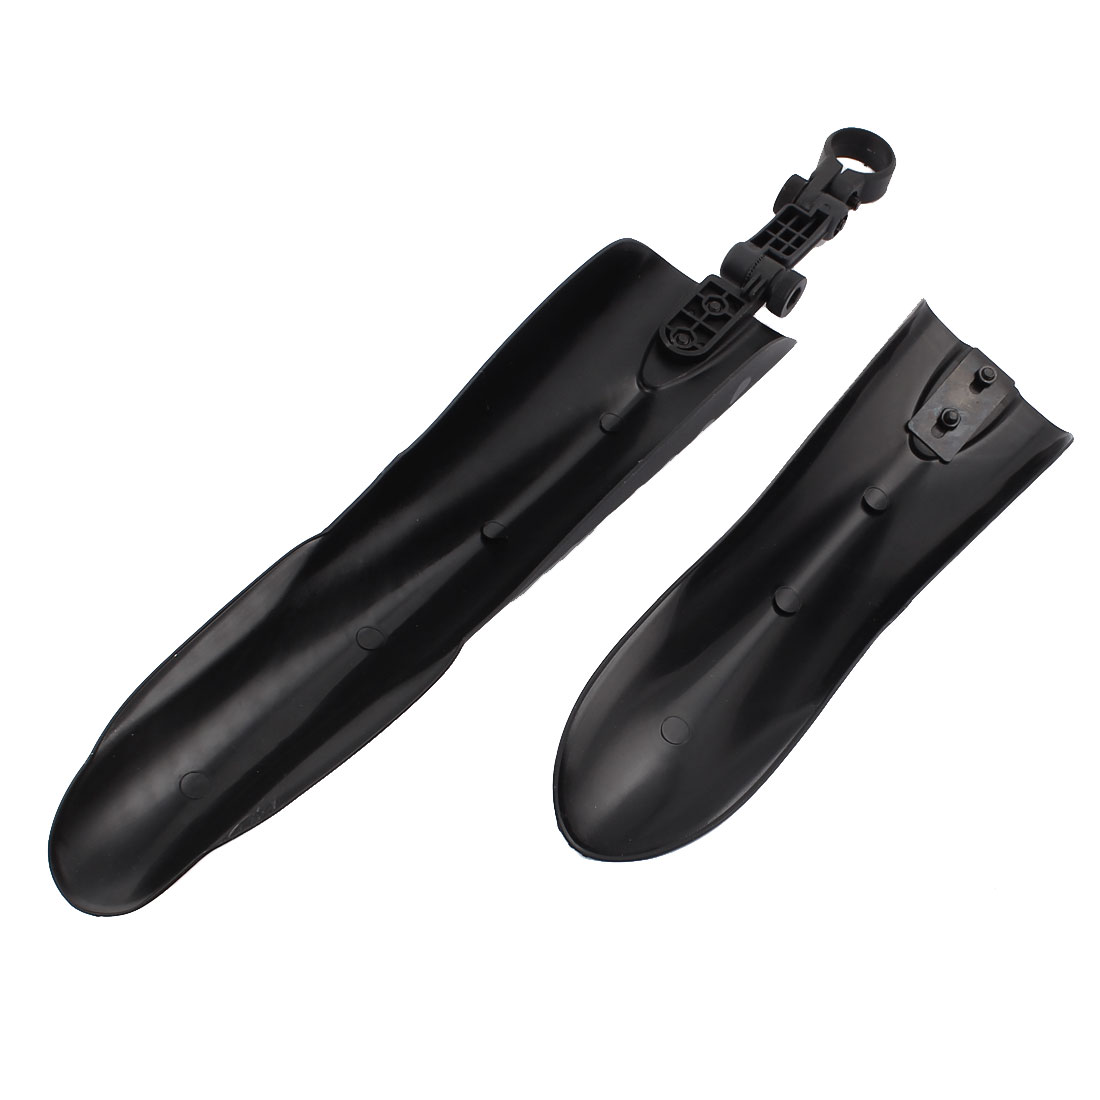 Cycling Bike Bicycle Plastic Rear Front Mud Guard Mudguard Fender Set Black